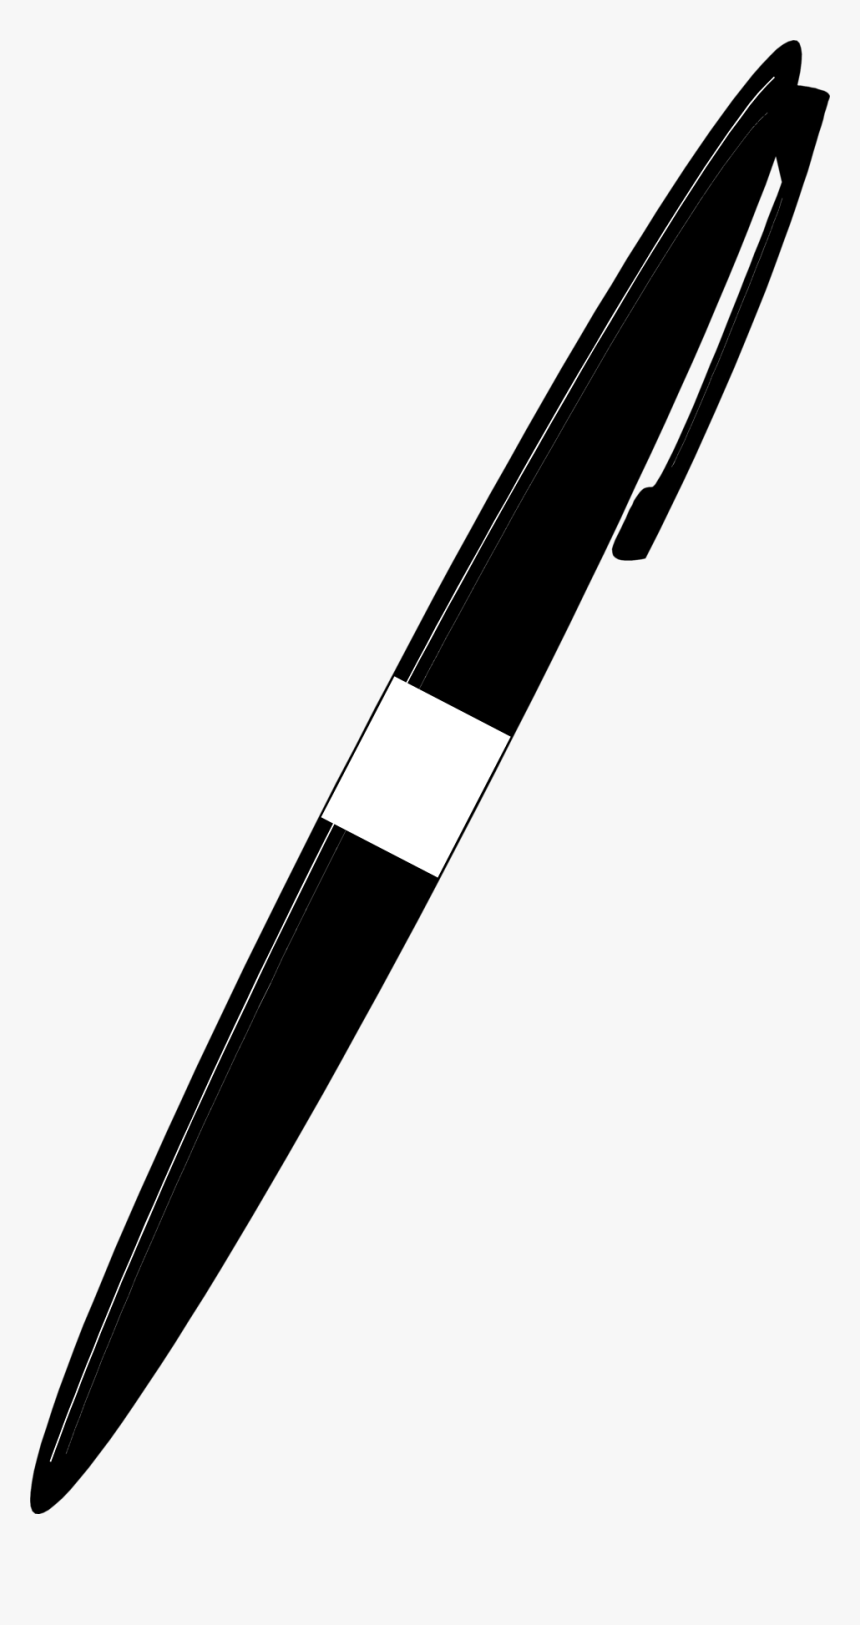 clipart pen black and white knife clip art hd png download transparent png image pngitem clipart pen black and white knife